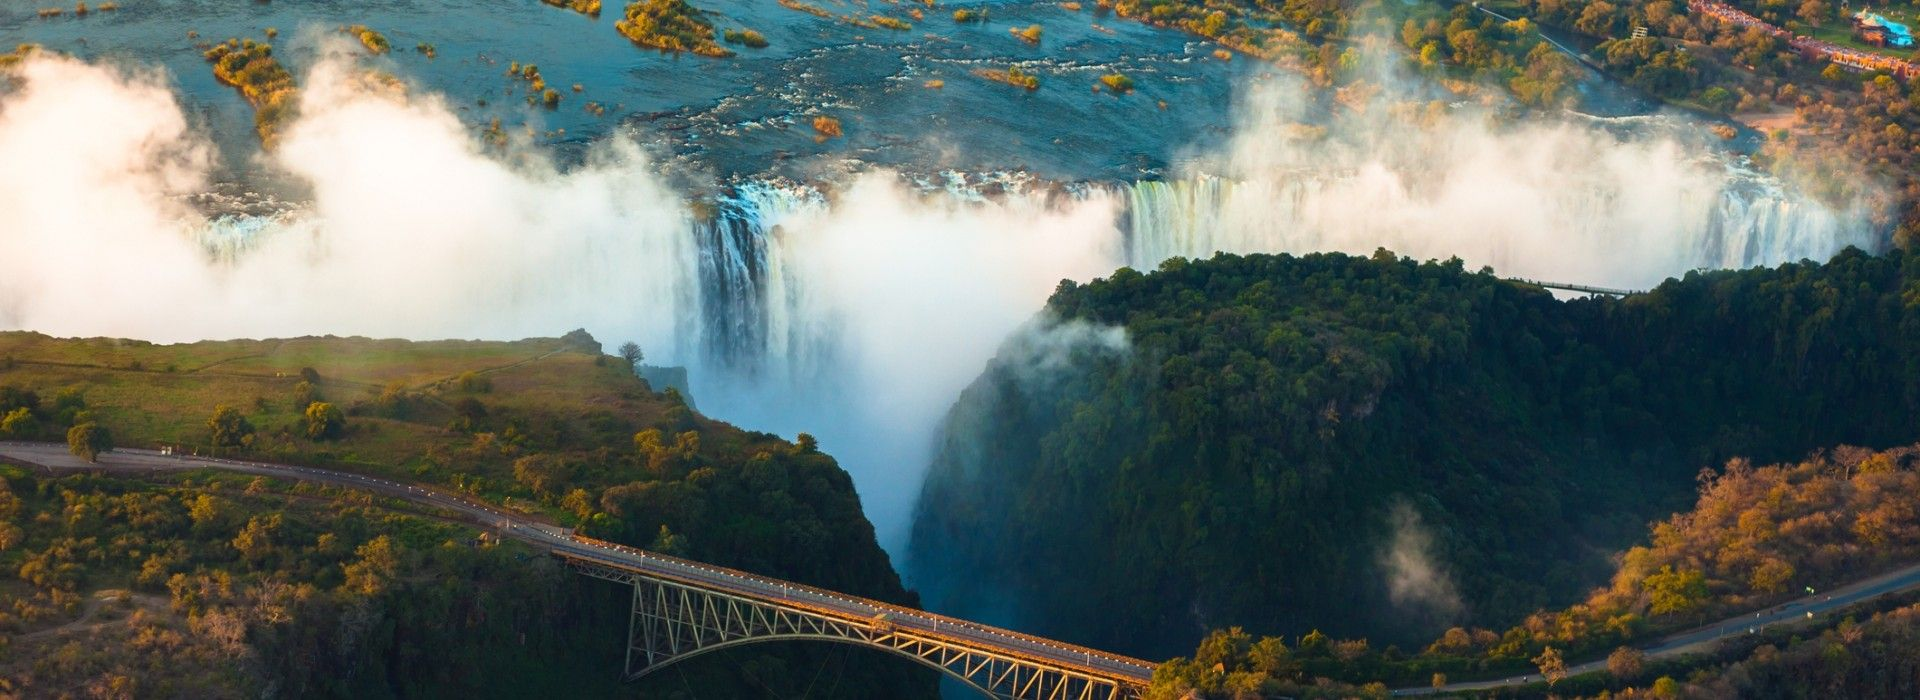 Wildlife, landscapes and nature Tours in Zambia